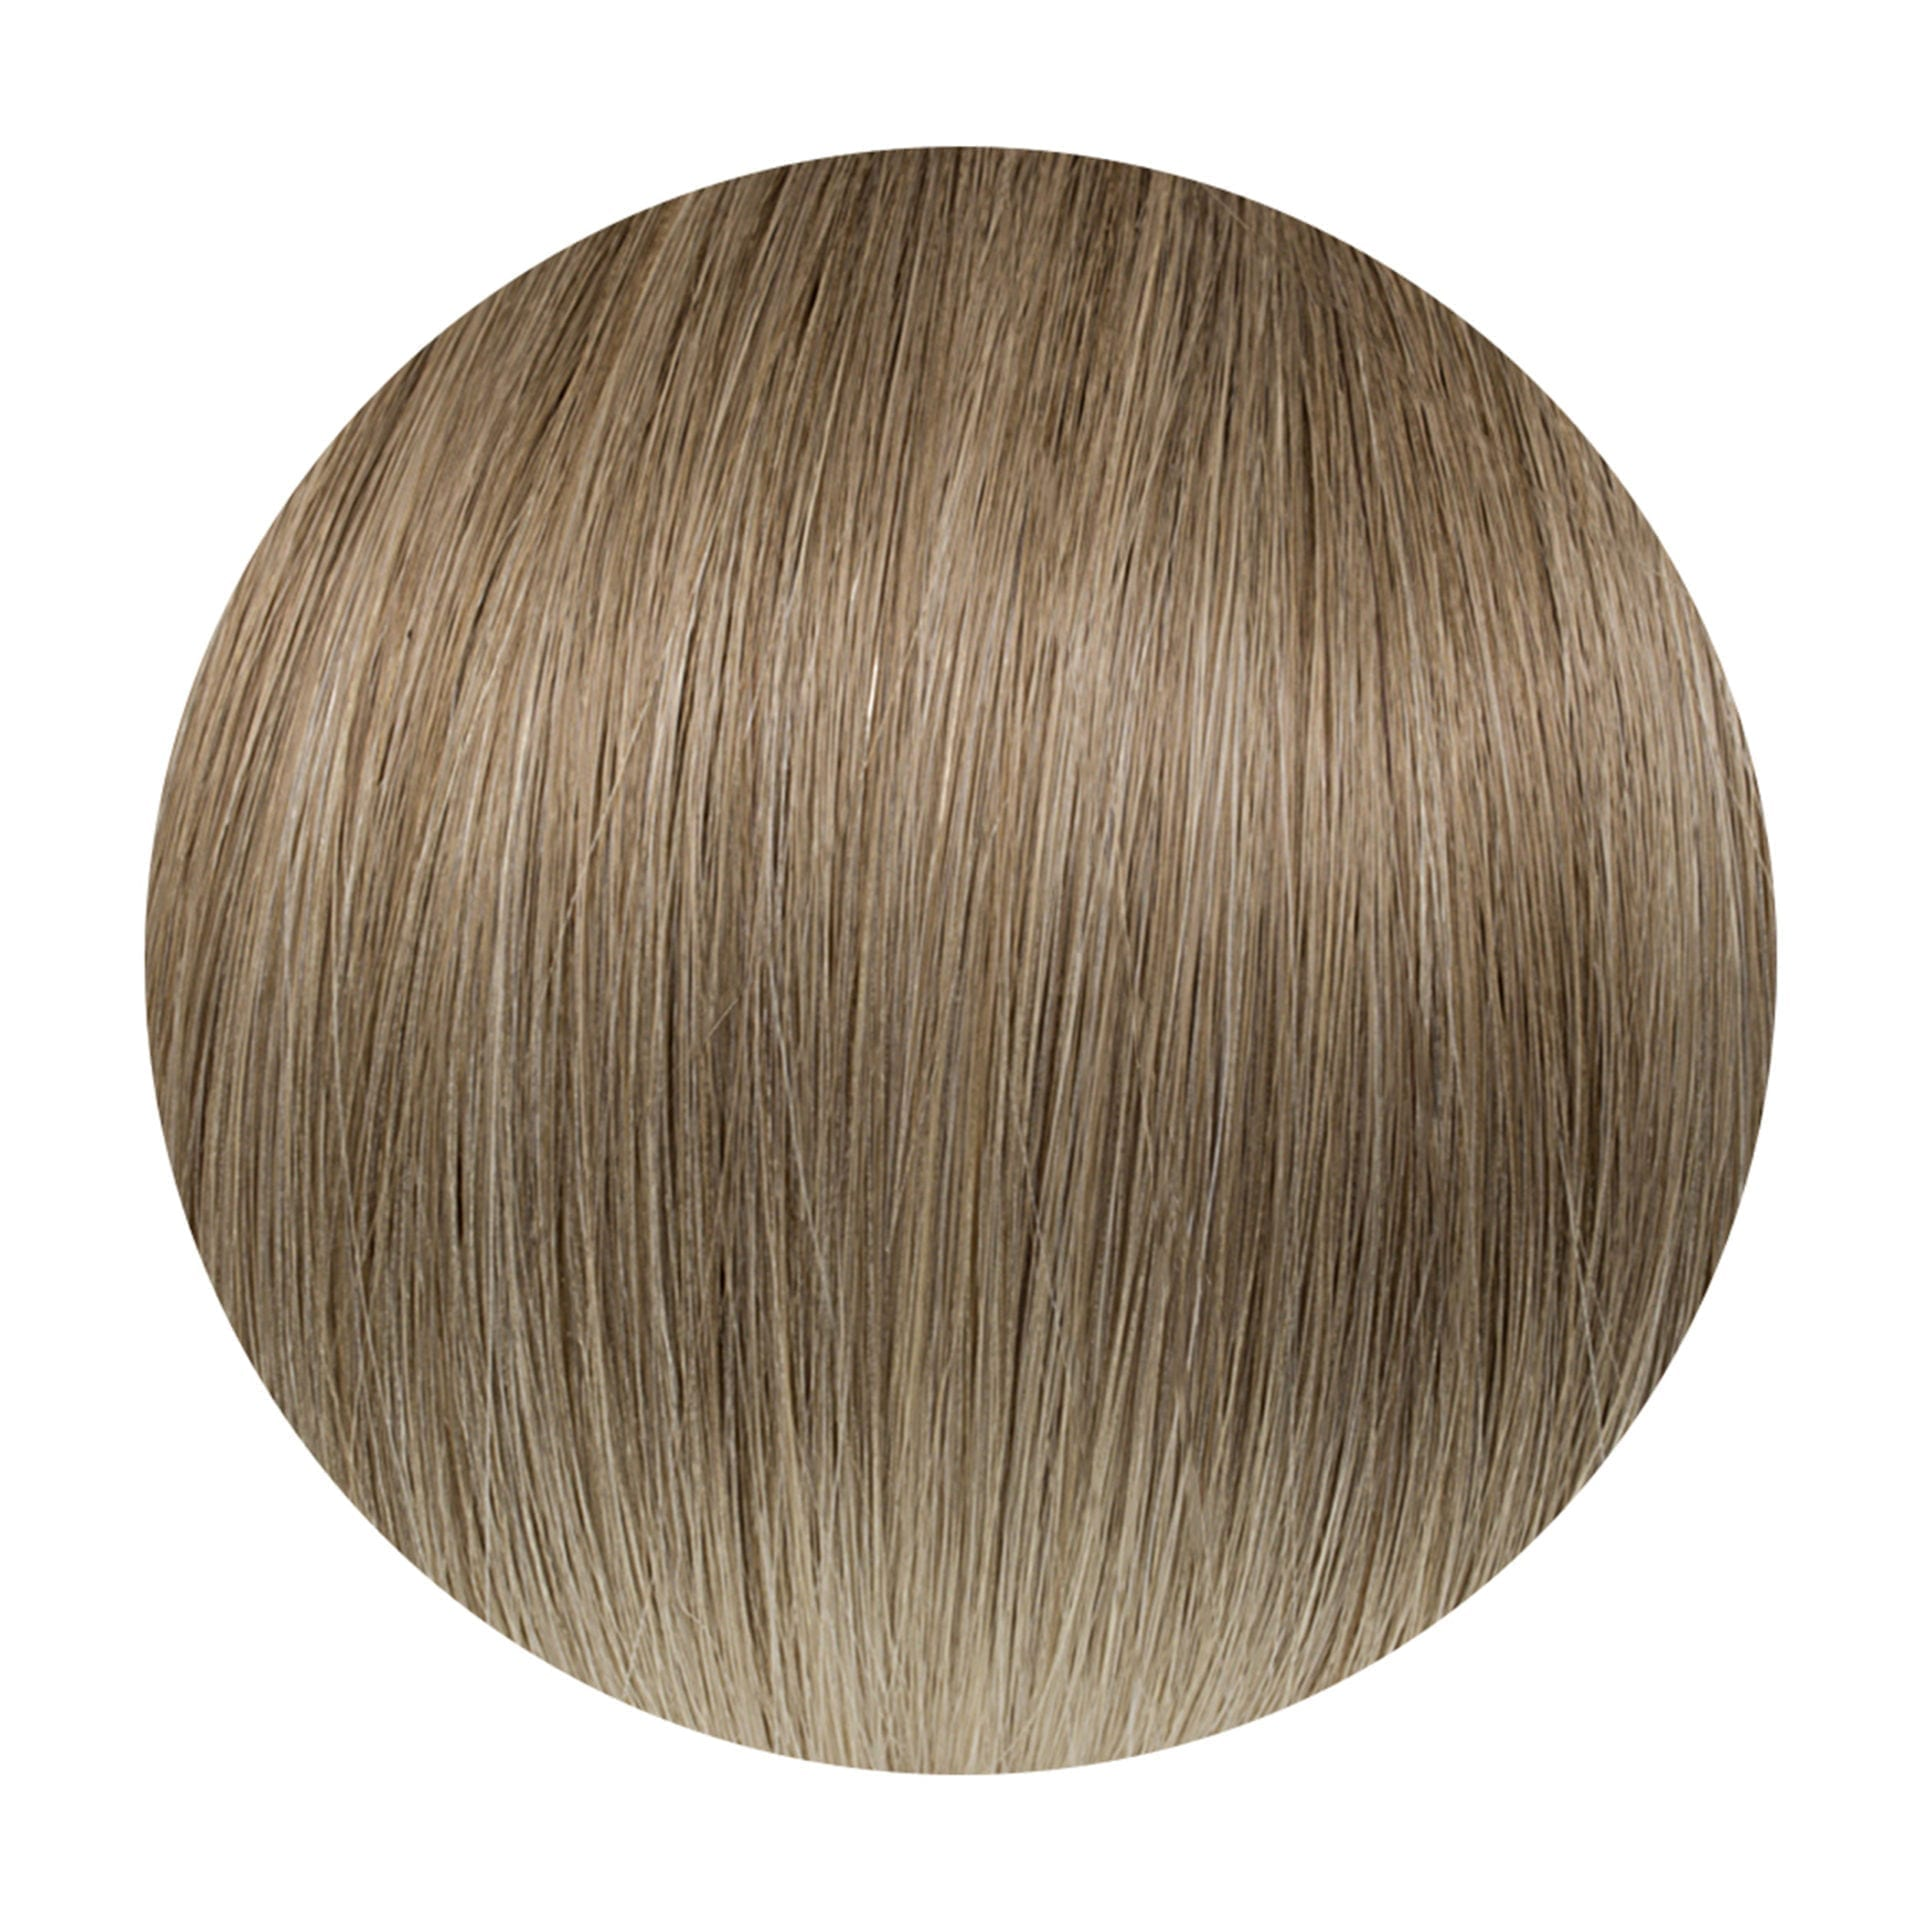 Summer Days Natural Wave Tape Hair Extensions Ultimate 21.5-22 Inches